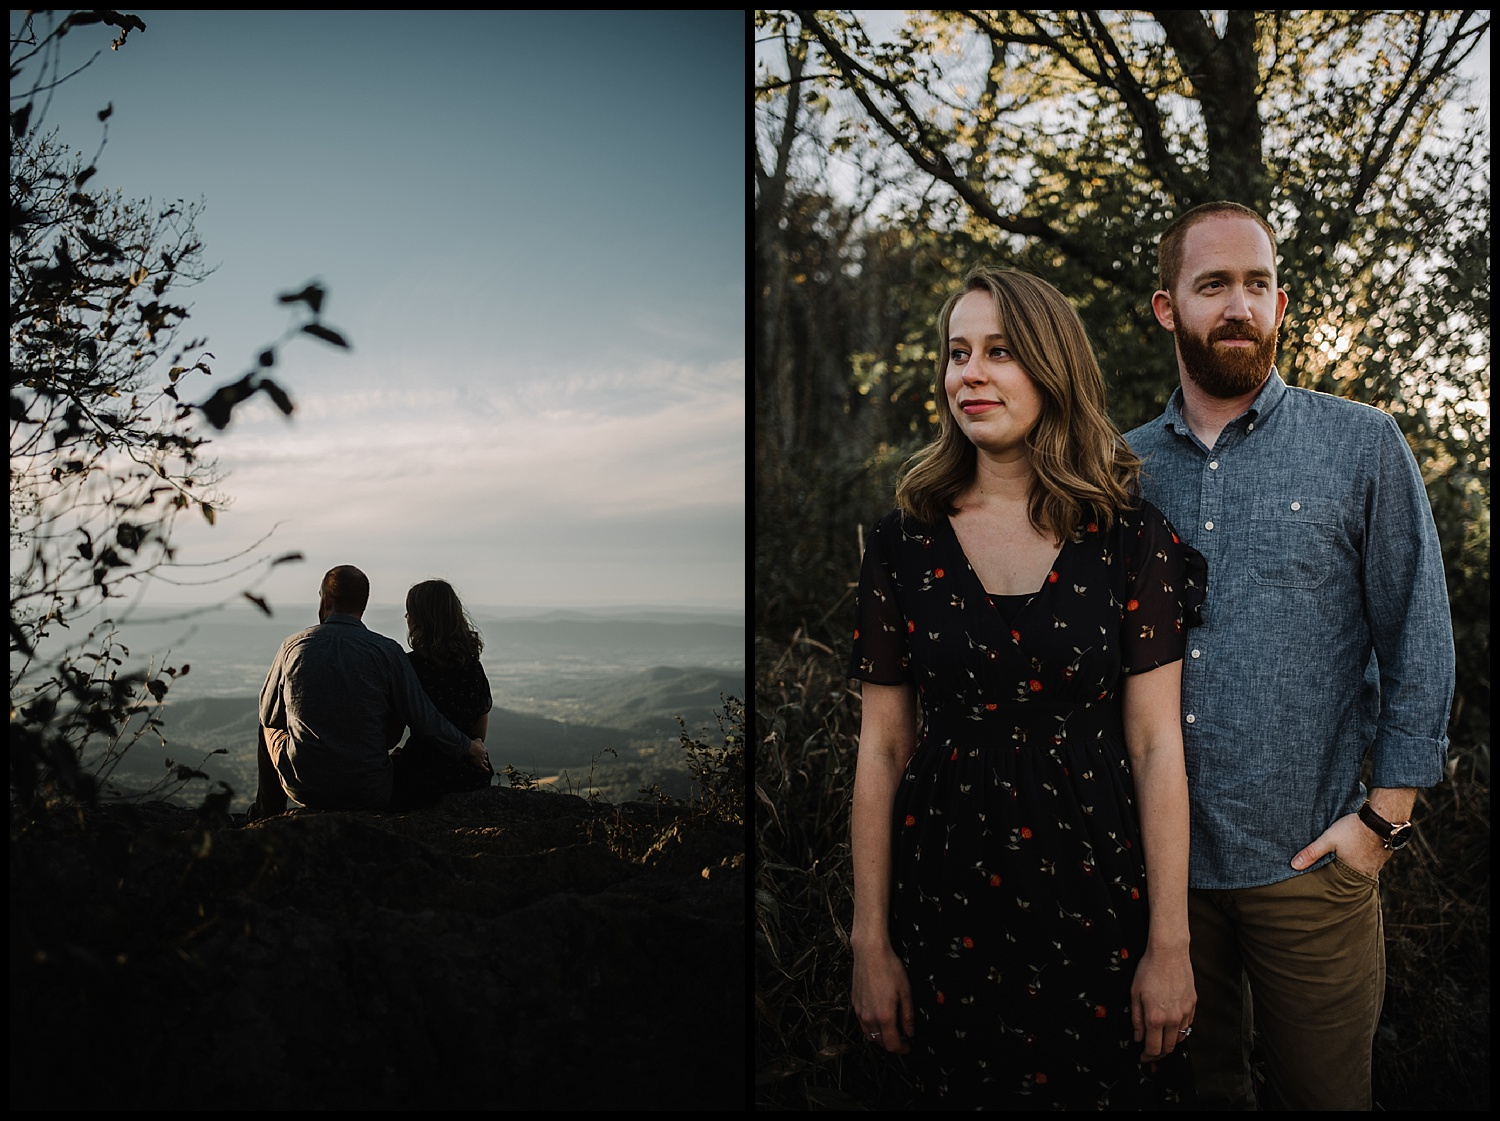 Molly and Zach Engagement Session - Fall Autumn Sunset Couple Adventure Session - Shenandoah National Park - Blue Ridge Parkway Skyline Drive - White Sails Creative_18.jpg